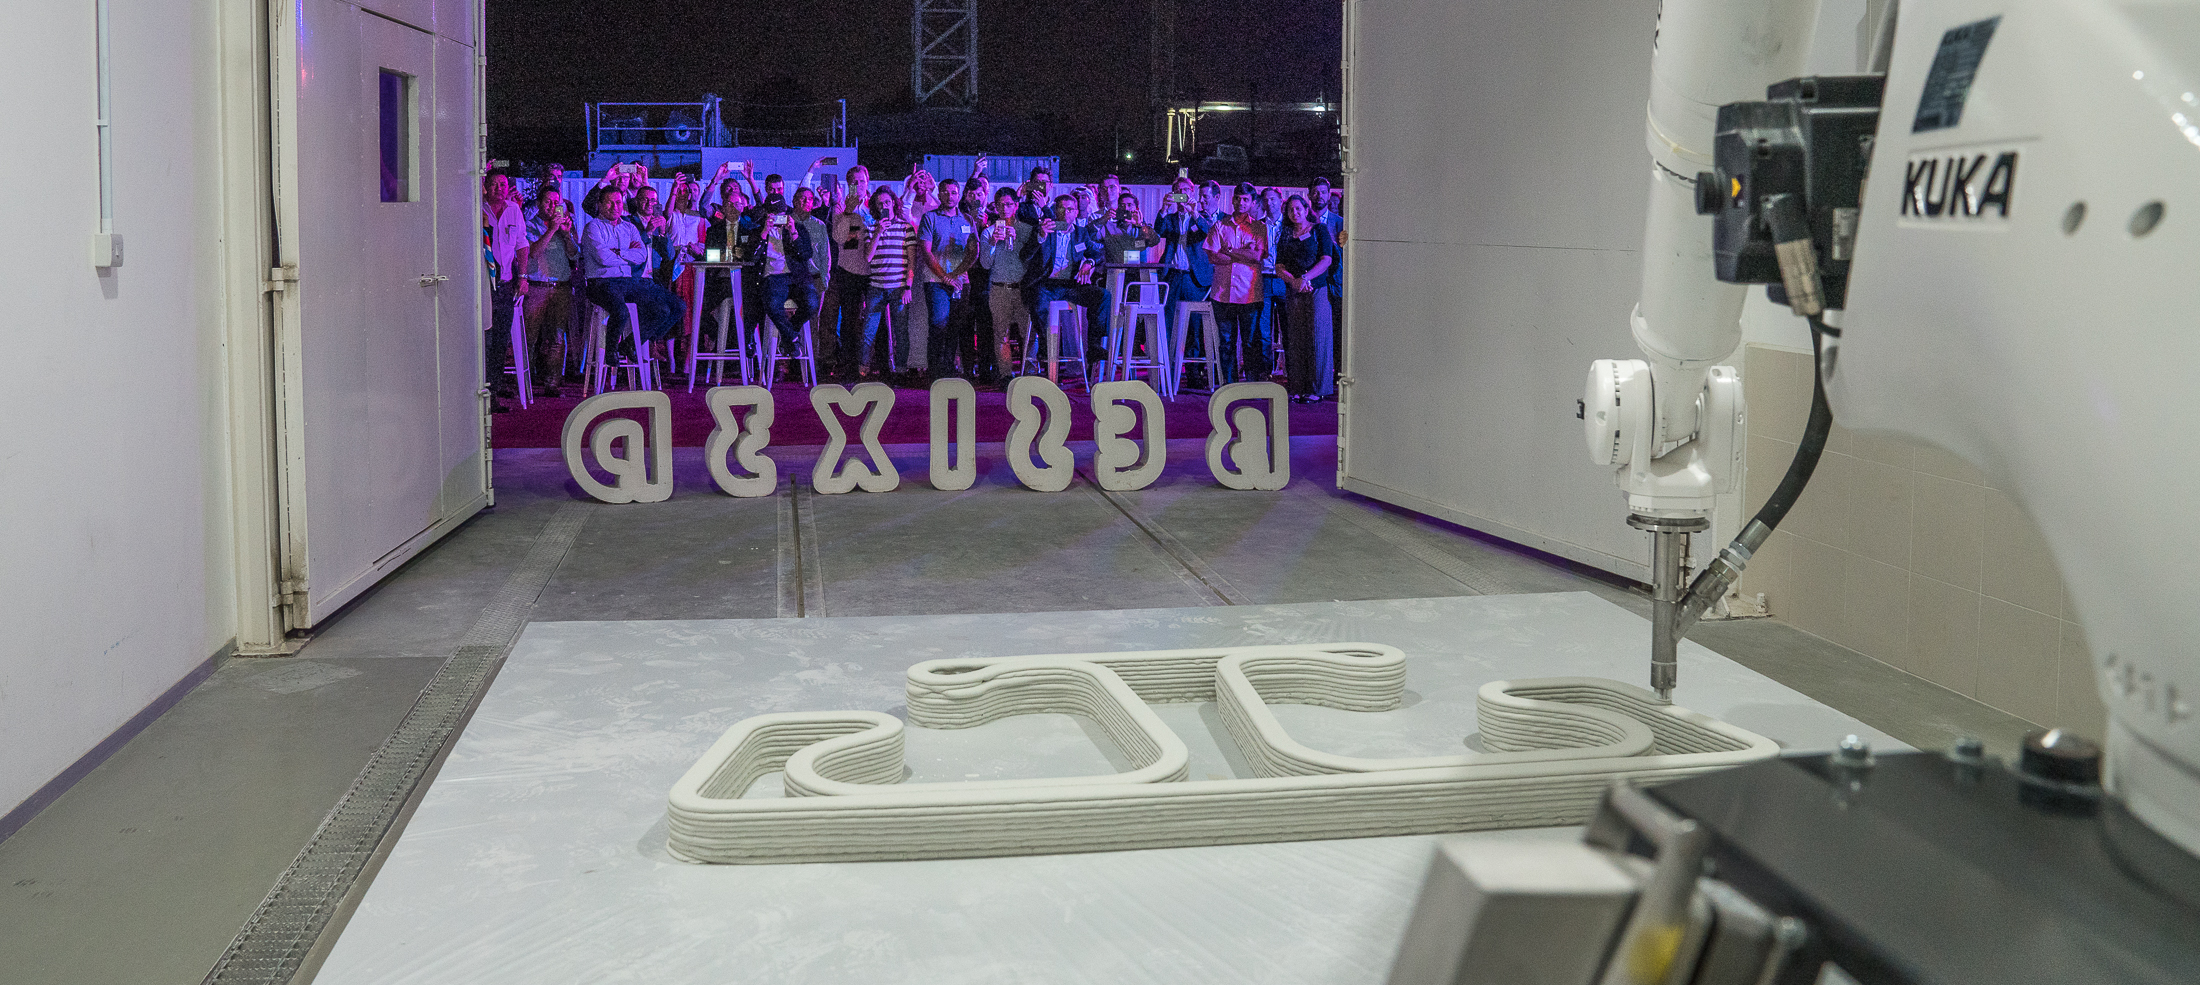 BESIX launches 3D concrete printing studio in Dubai - Six